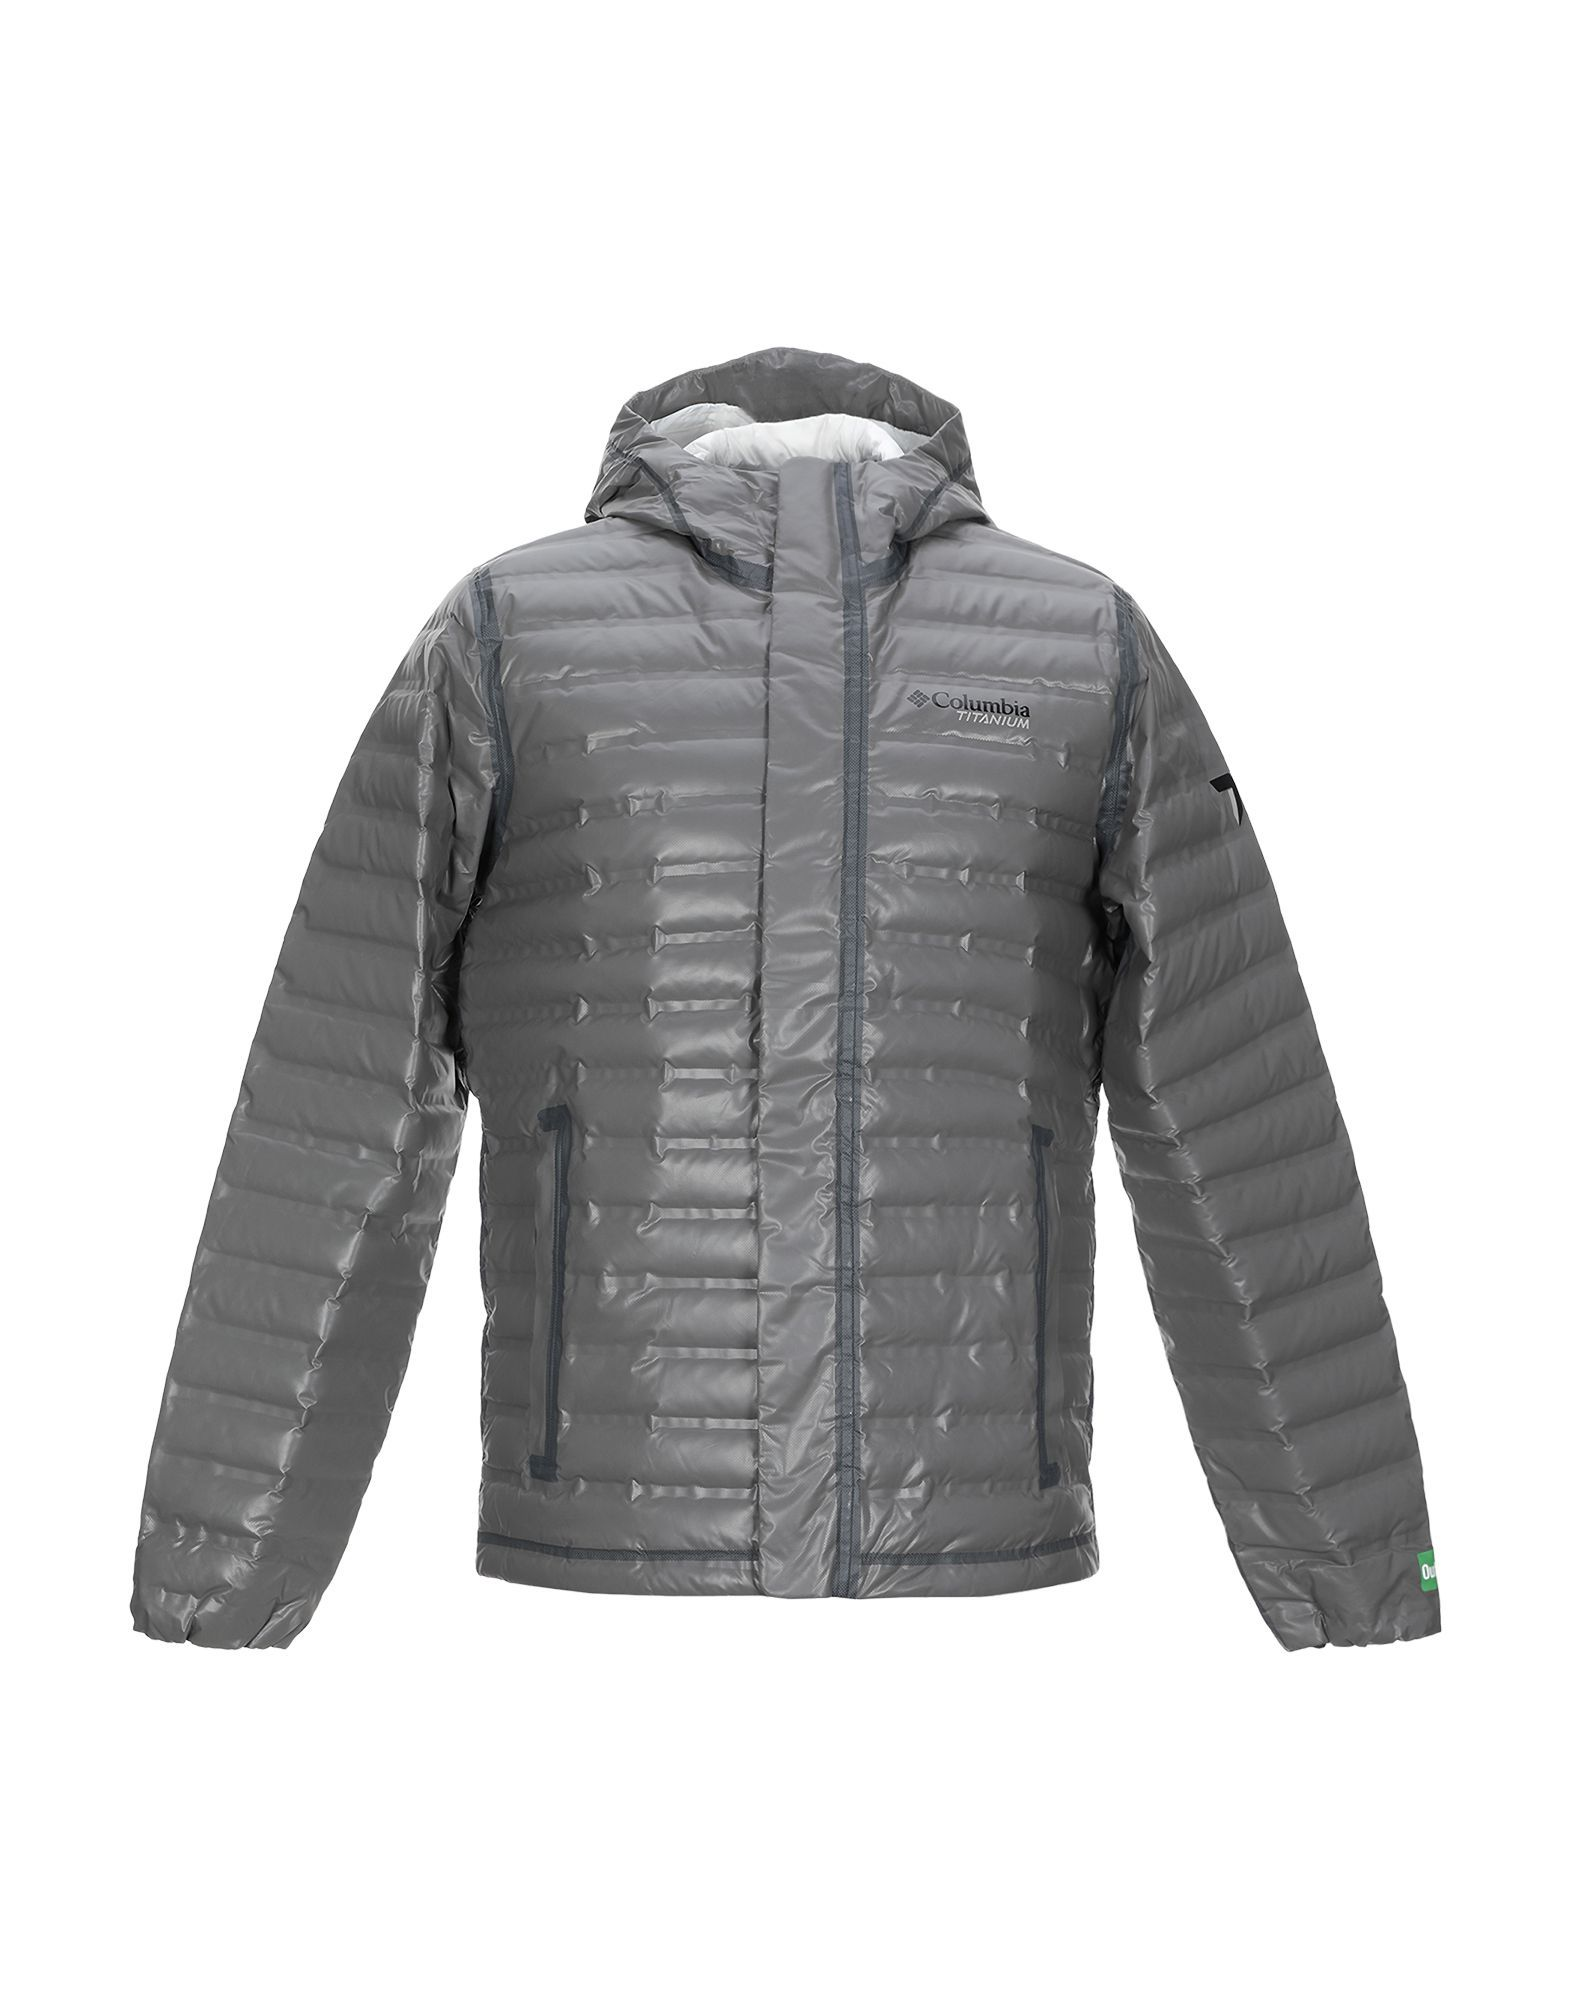 Columbia Grey Recycled Polyester Jacket